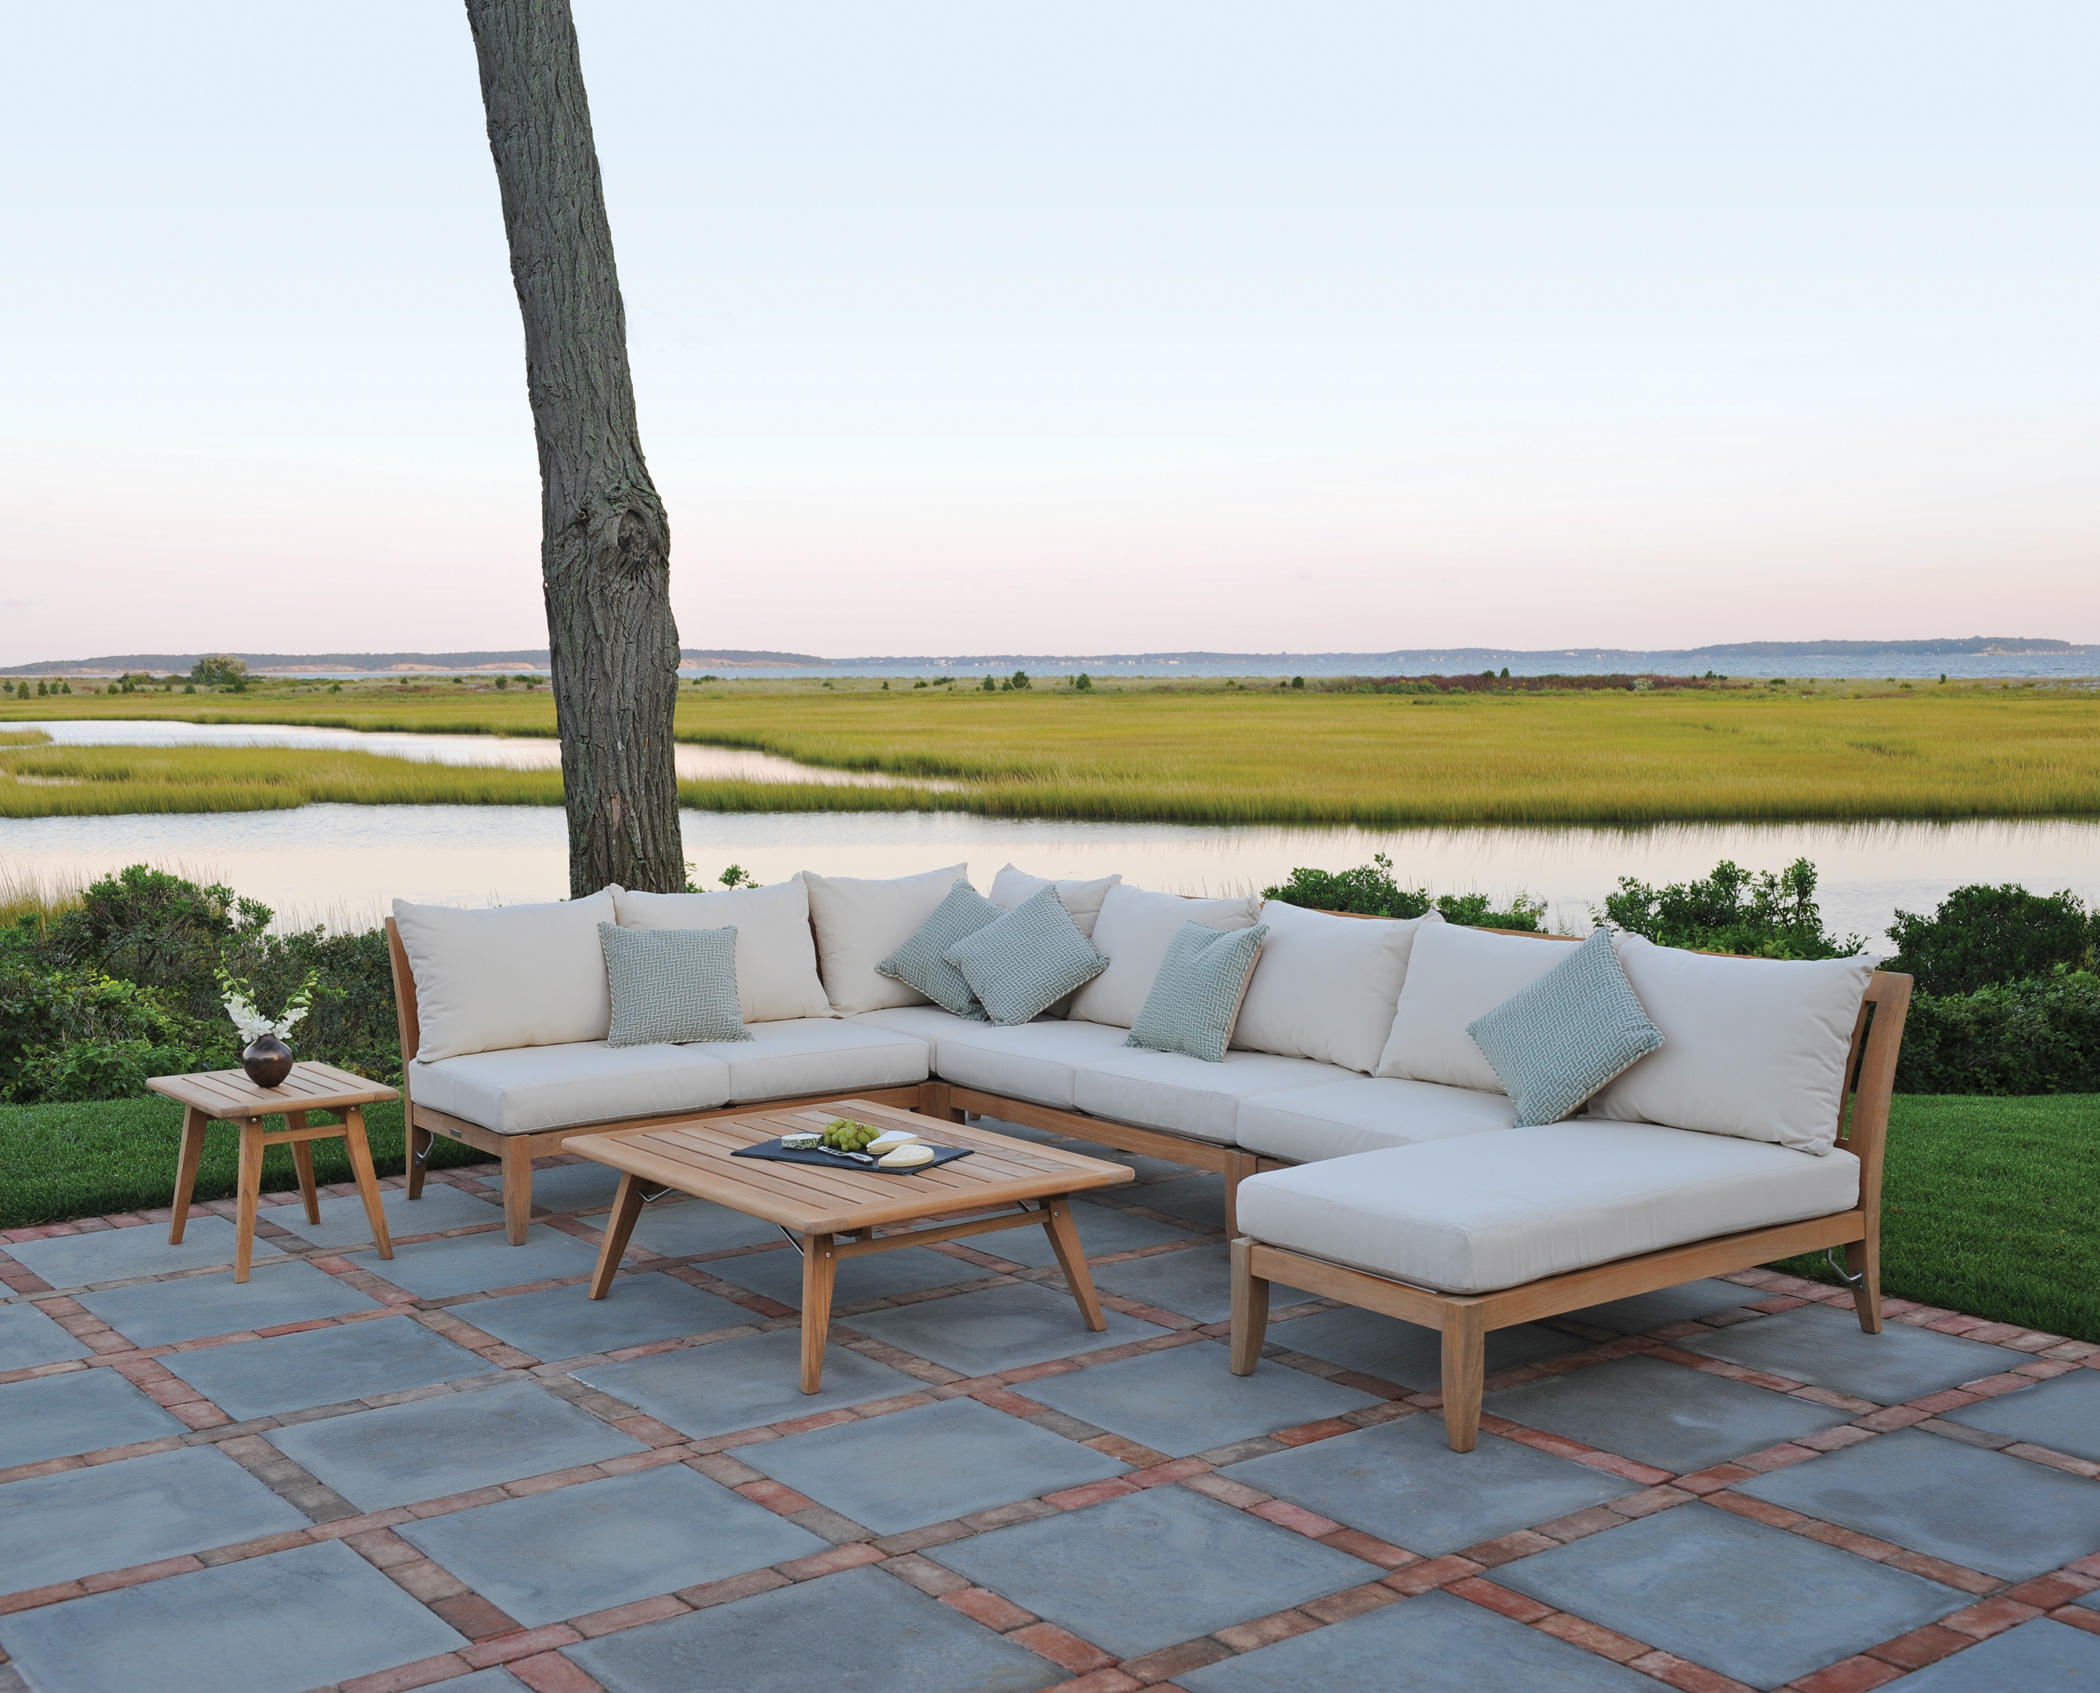 tropic aire patio gallery 1404